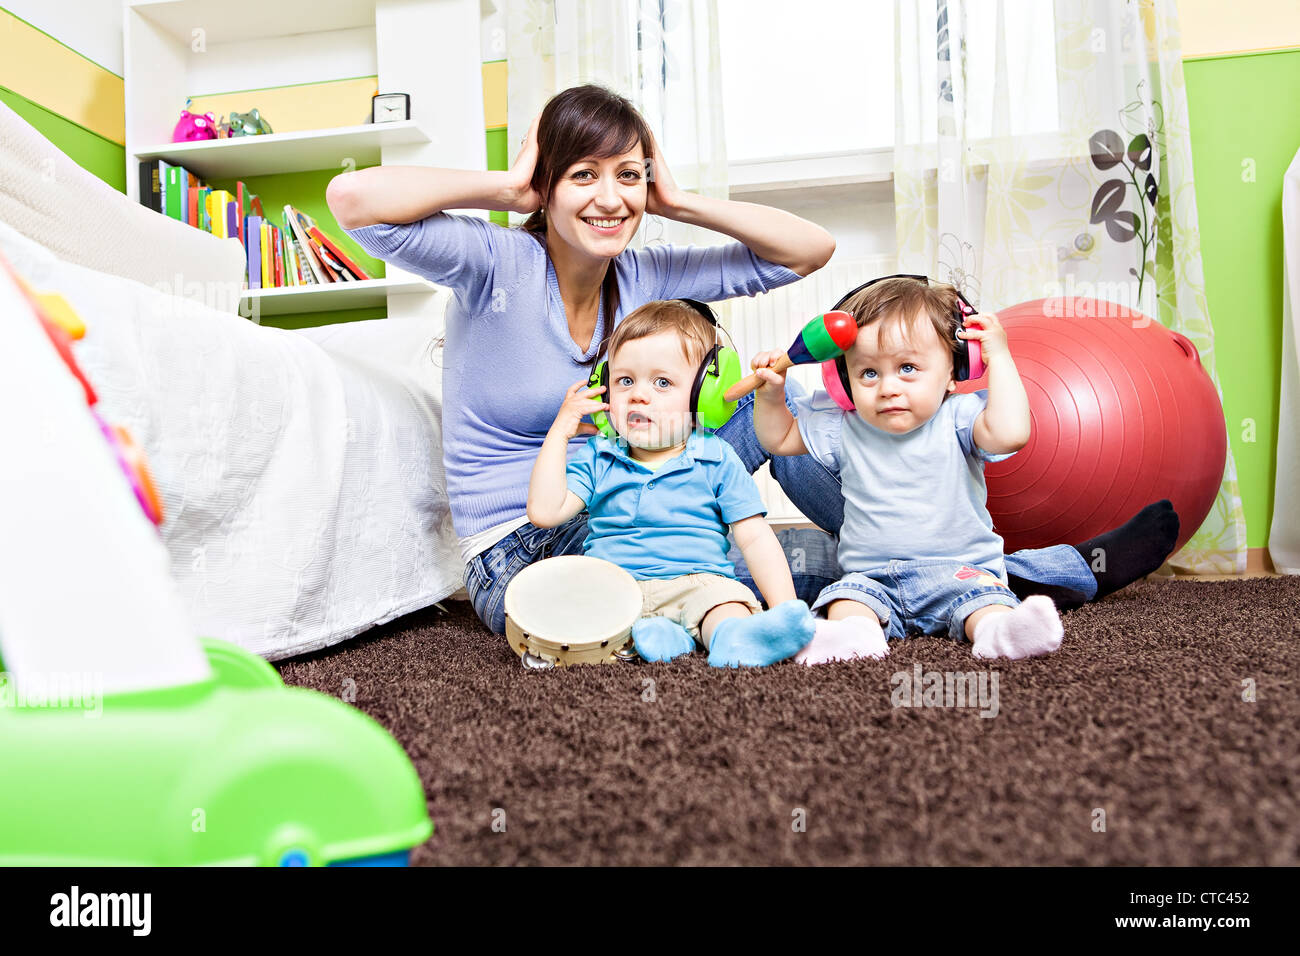 little toddler twins playing in the child's room Stock Photo